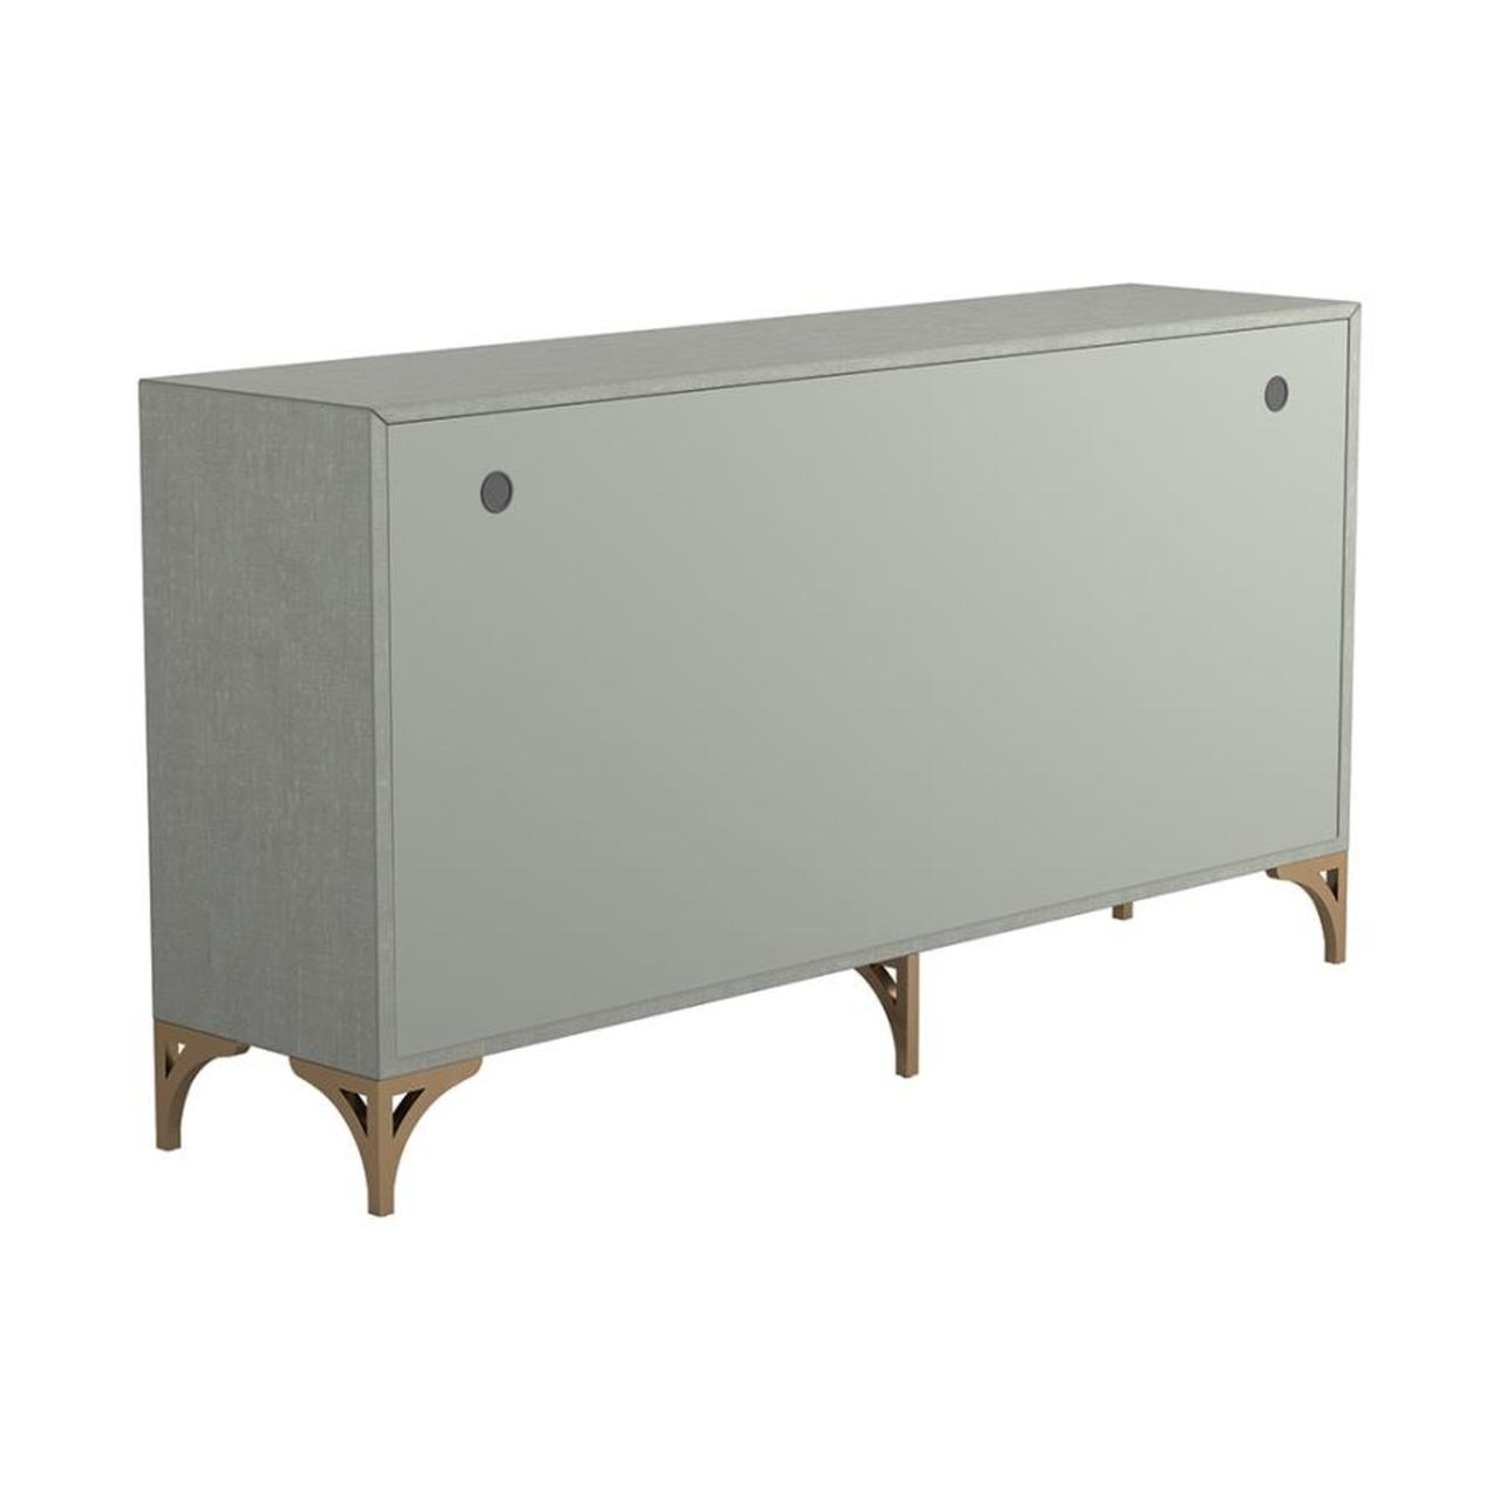 Contemporary Accent Cabinet In Grey Green Finish - image-3